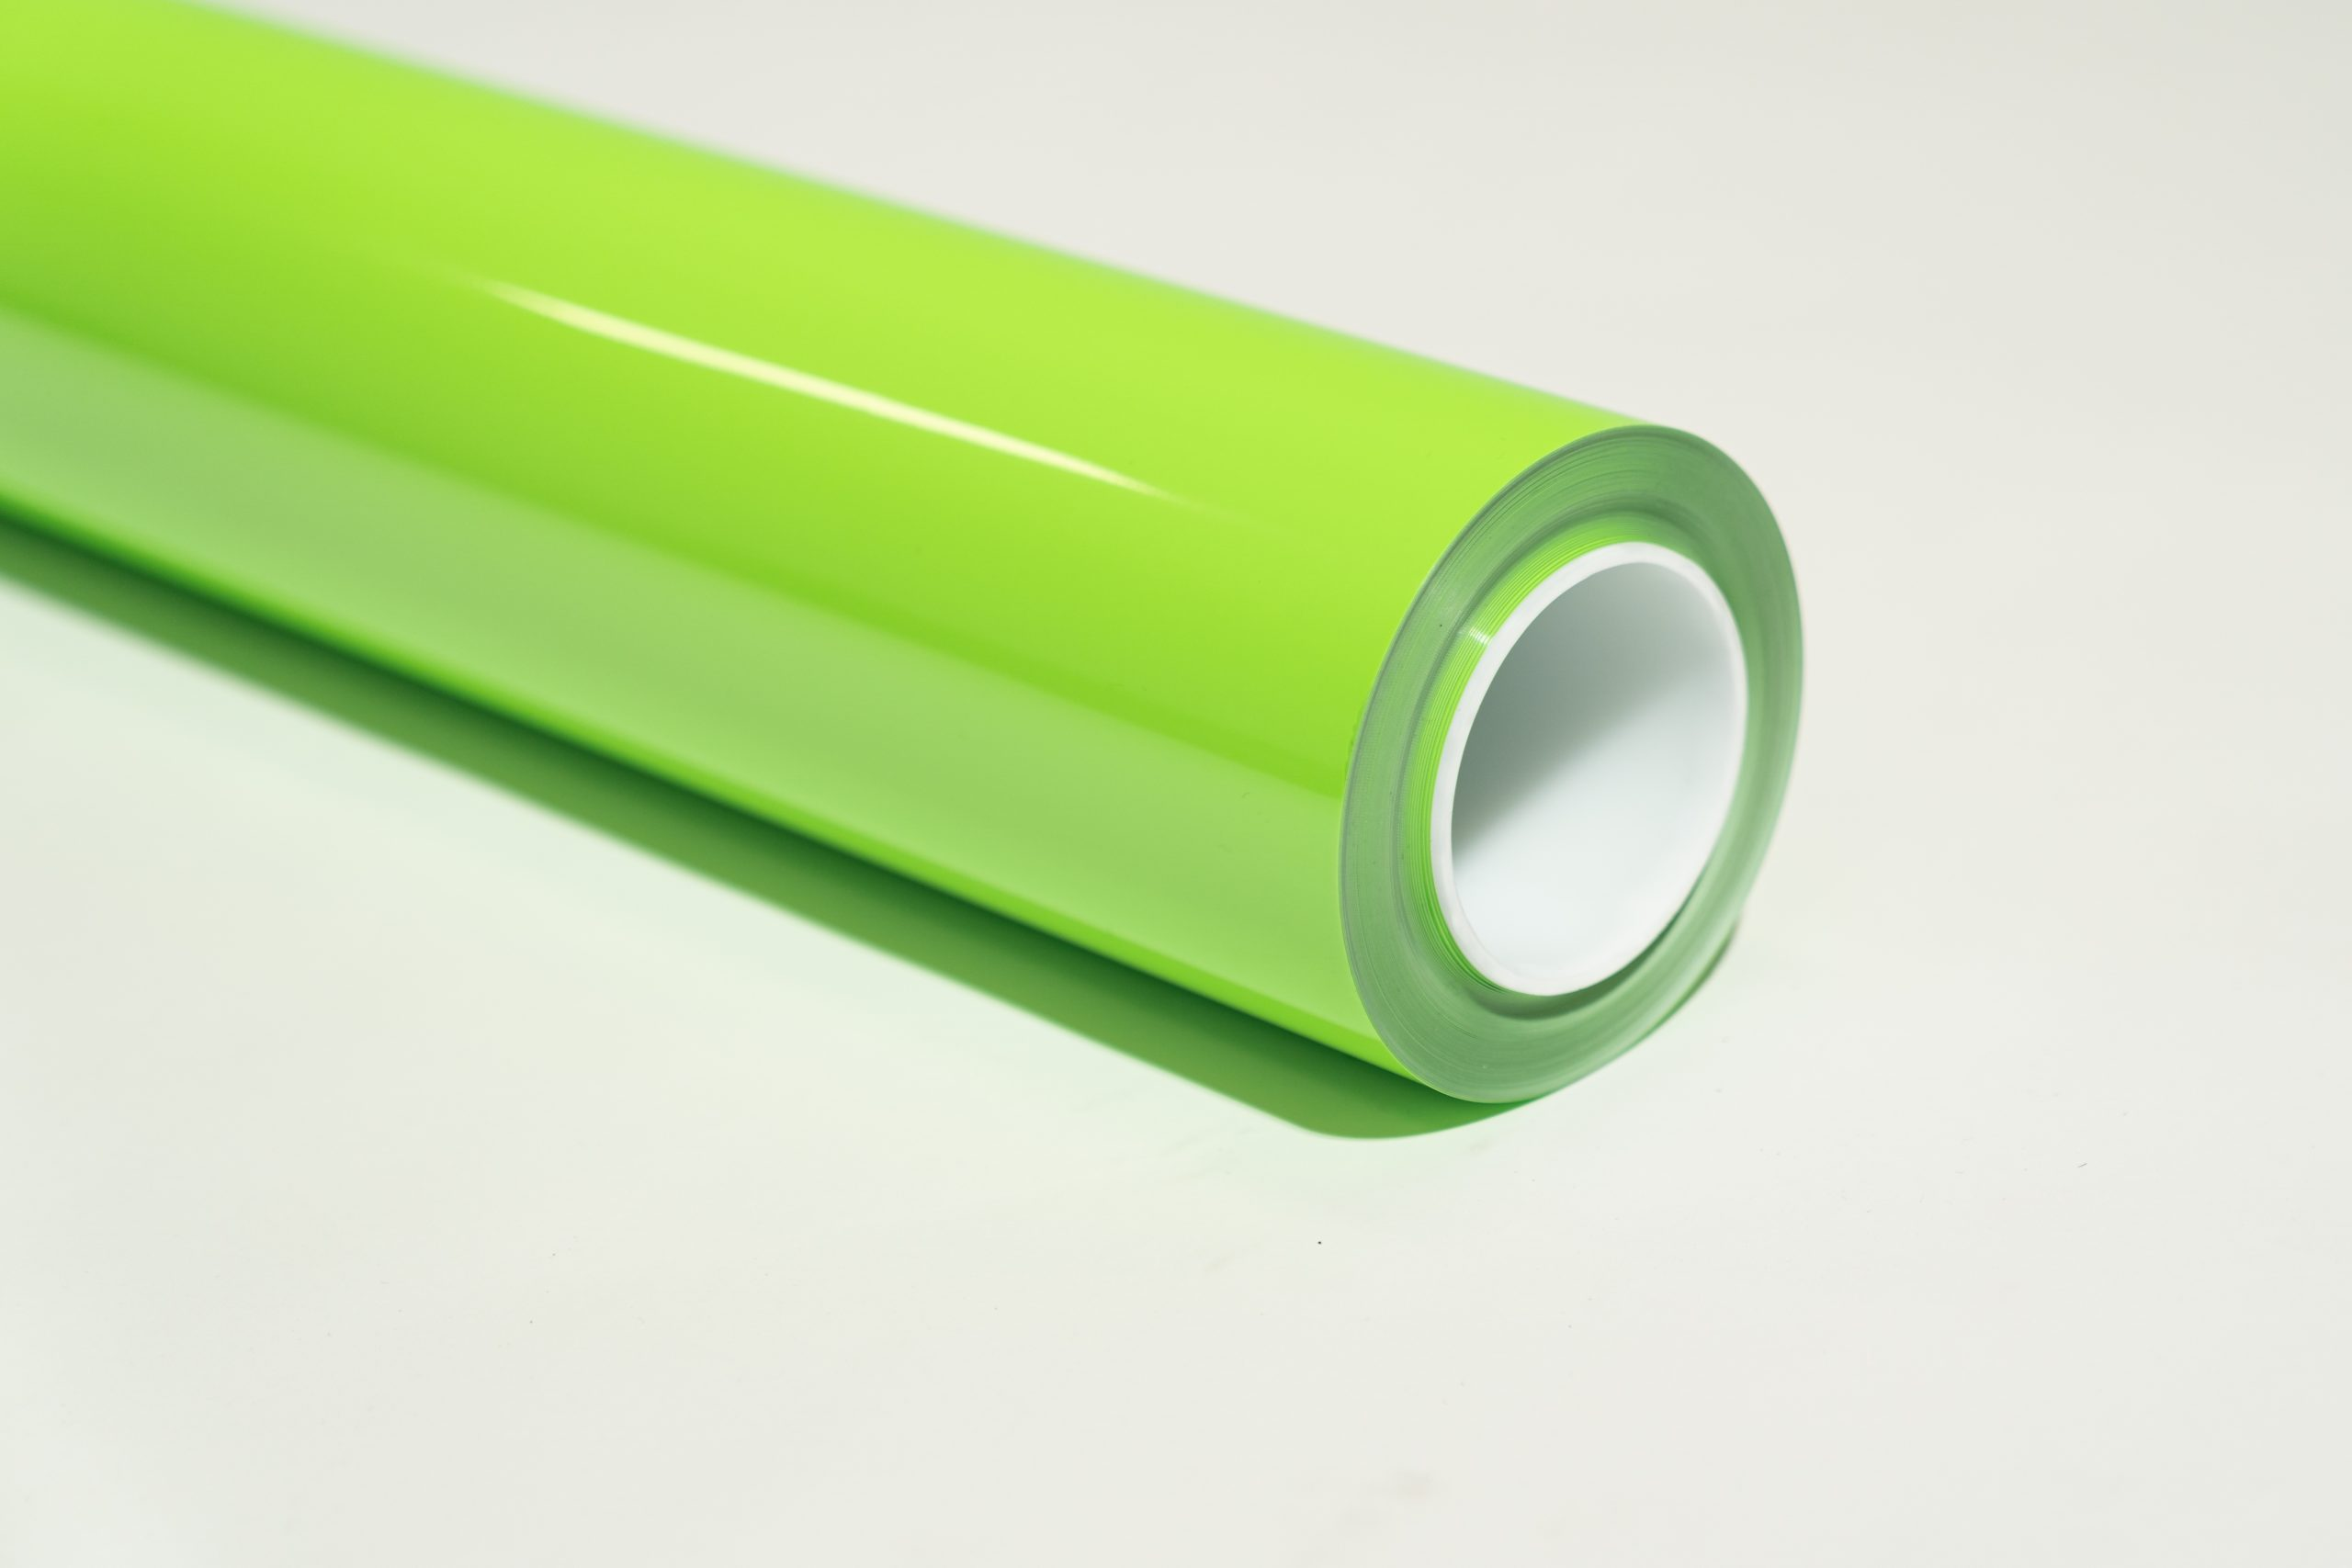 Inozetek - Super Gloss Acid Green 1.52 x 20